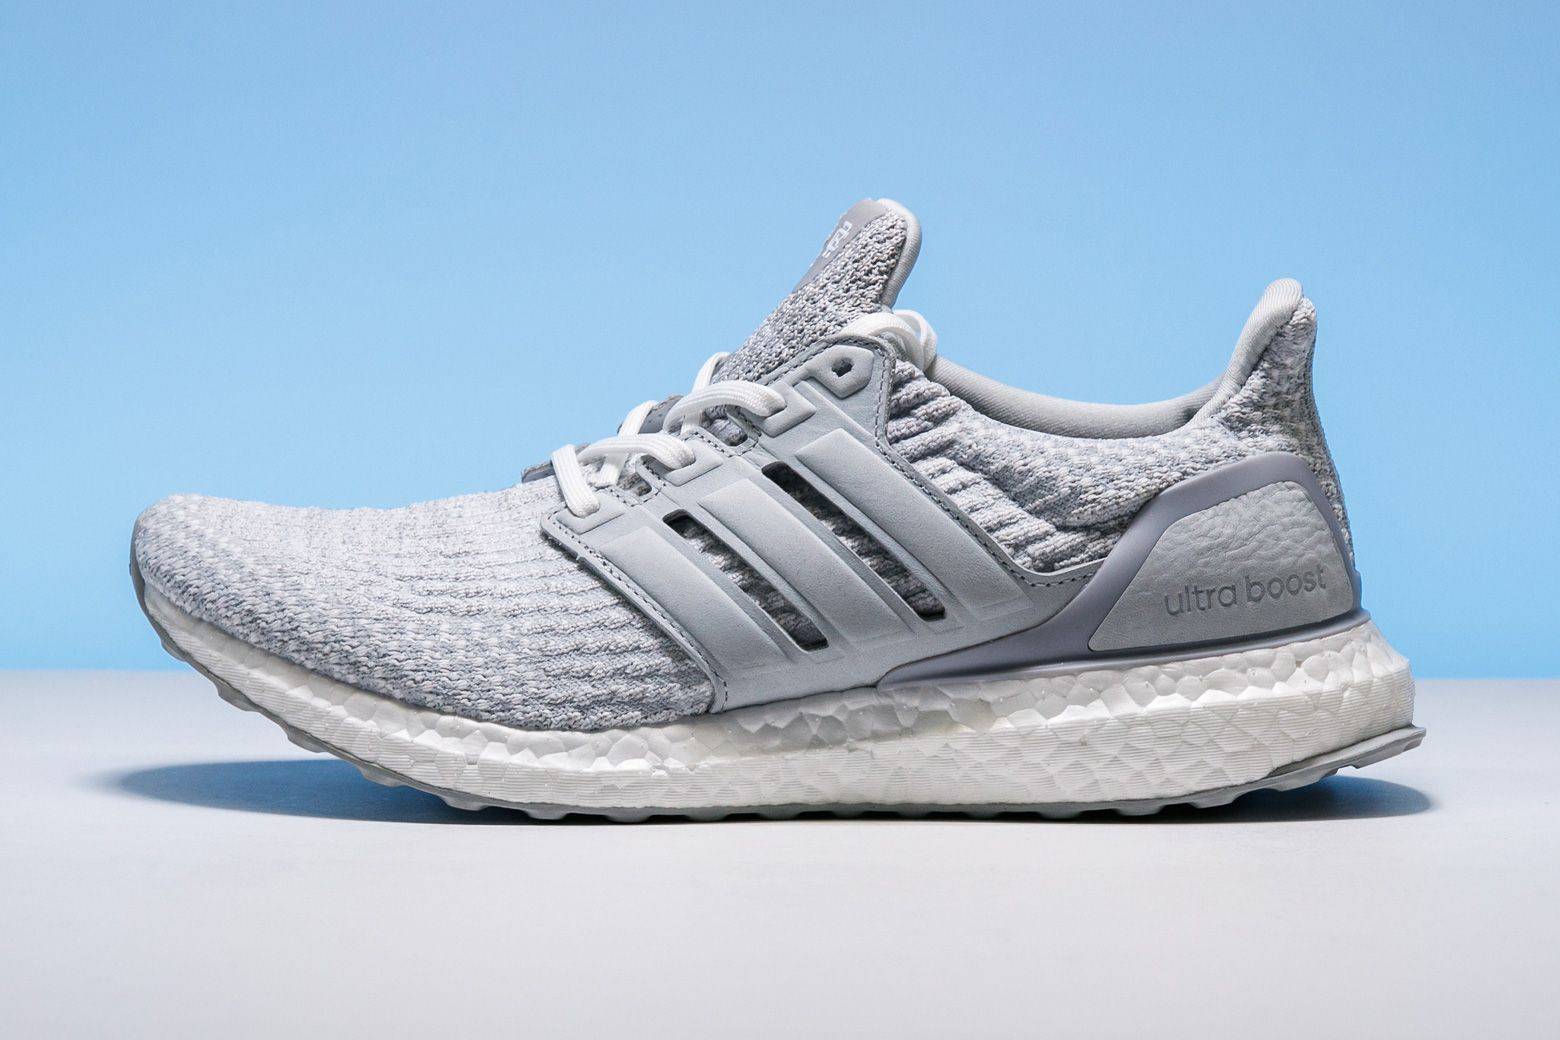 size 40 8057f 7c7ea Reigning Champ and adidas cooked up this light greyscale version of the Ultra  Boost 3.0 silhouette